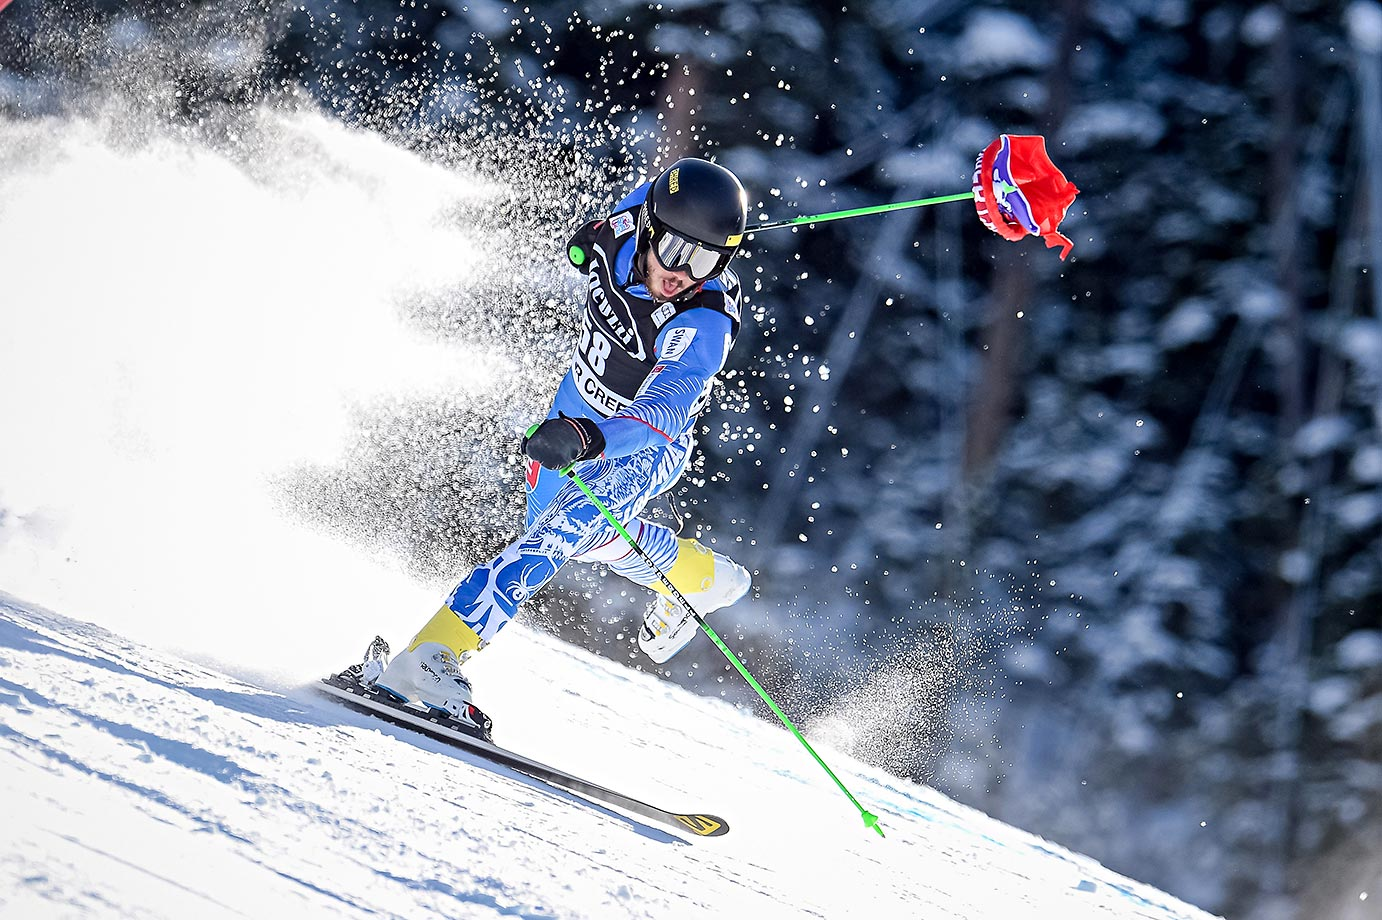 Andreas Zampa of Slovakia loses a ski and grabs a flag with his pole during the Audi FIS Alpine Ski World Cup in Beaver Creek, Colo.